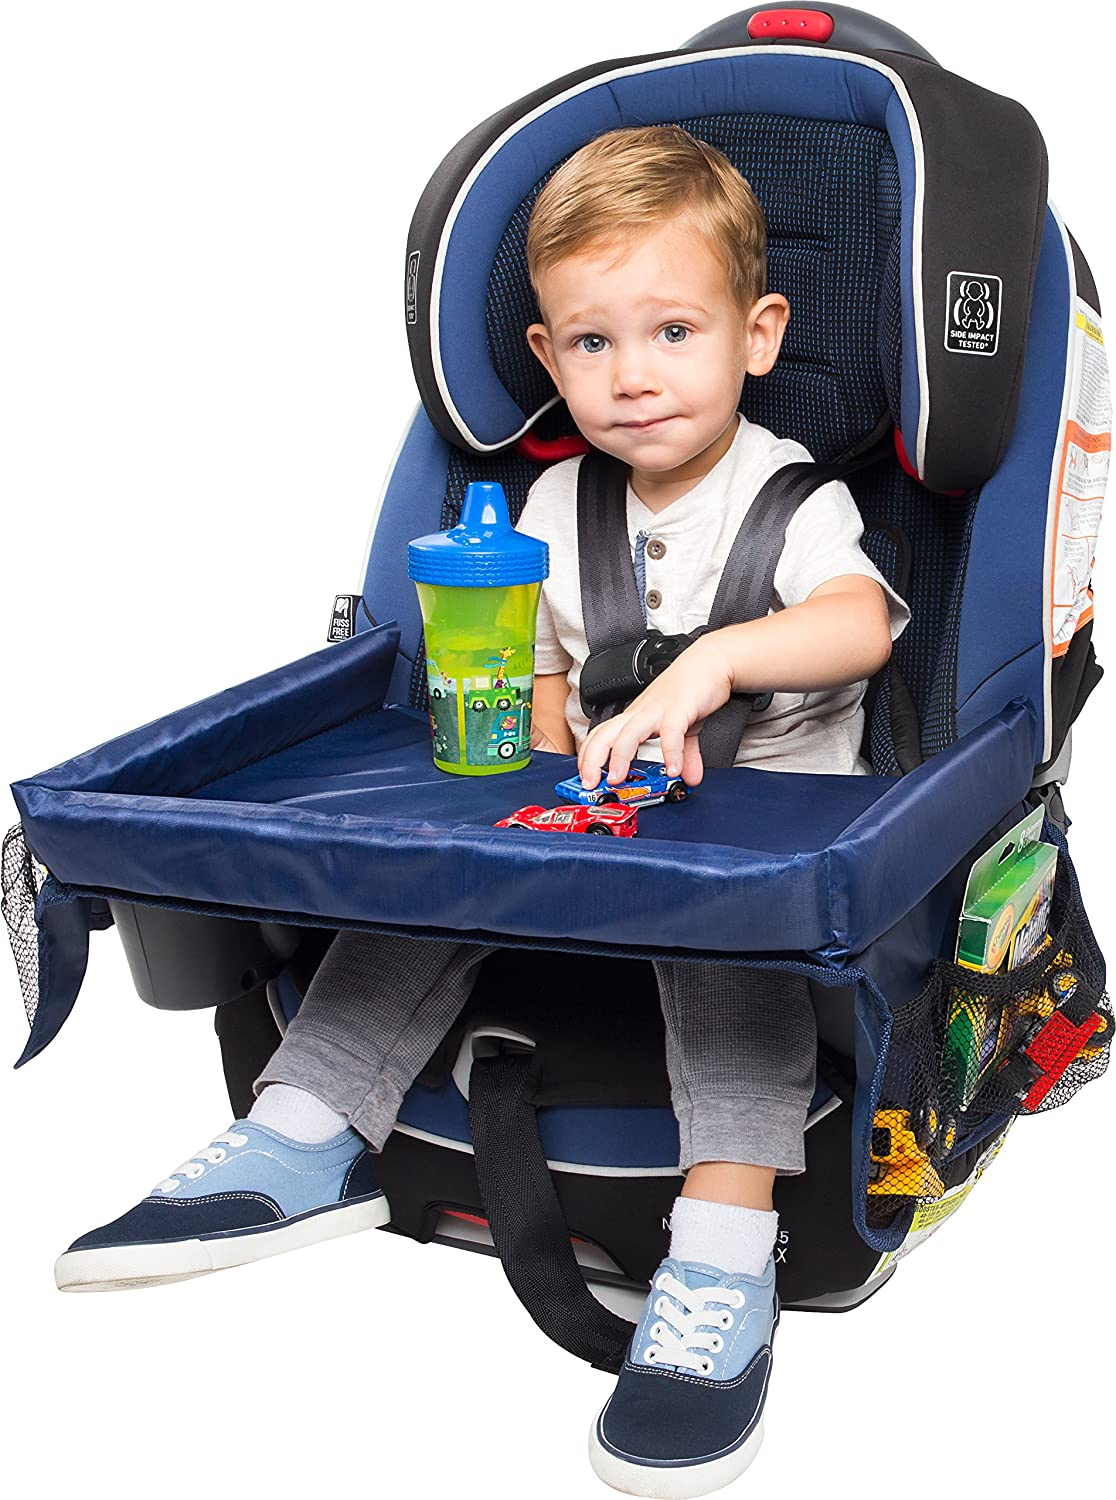 OxGord Children's Snack, Play, & Learn Activity Travel Tray for Baby Car Seats OxGord Children's Snack PLAT-01